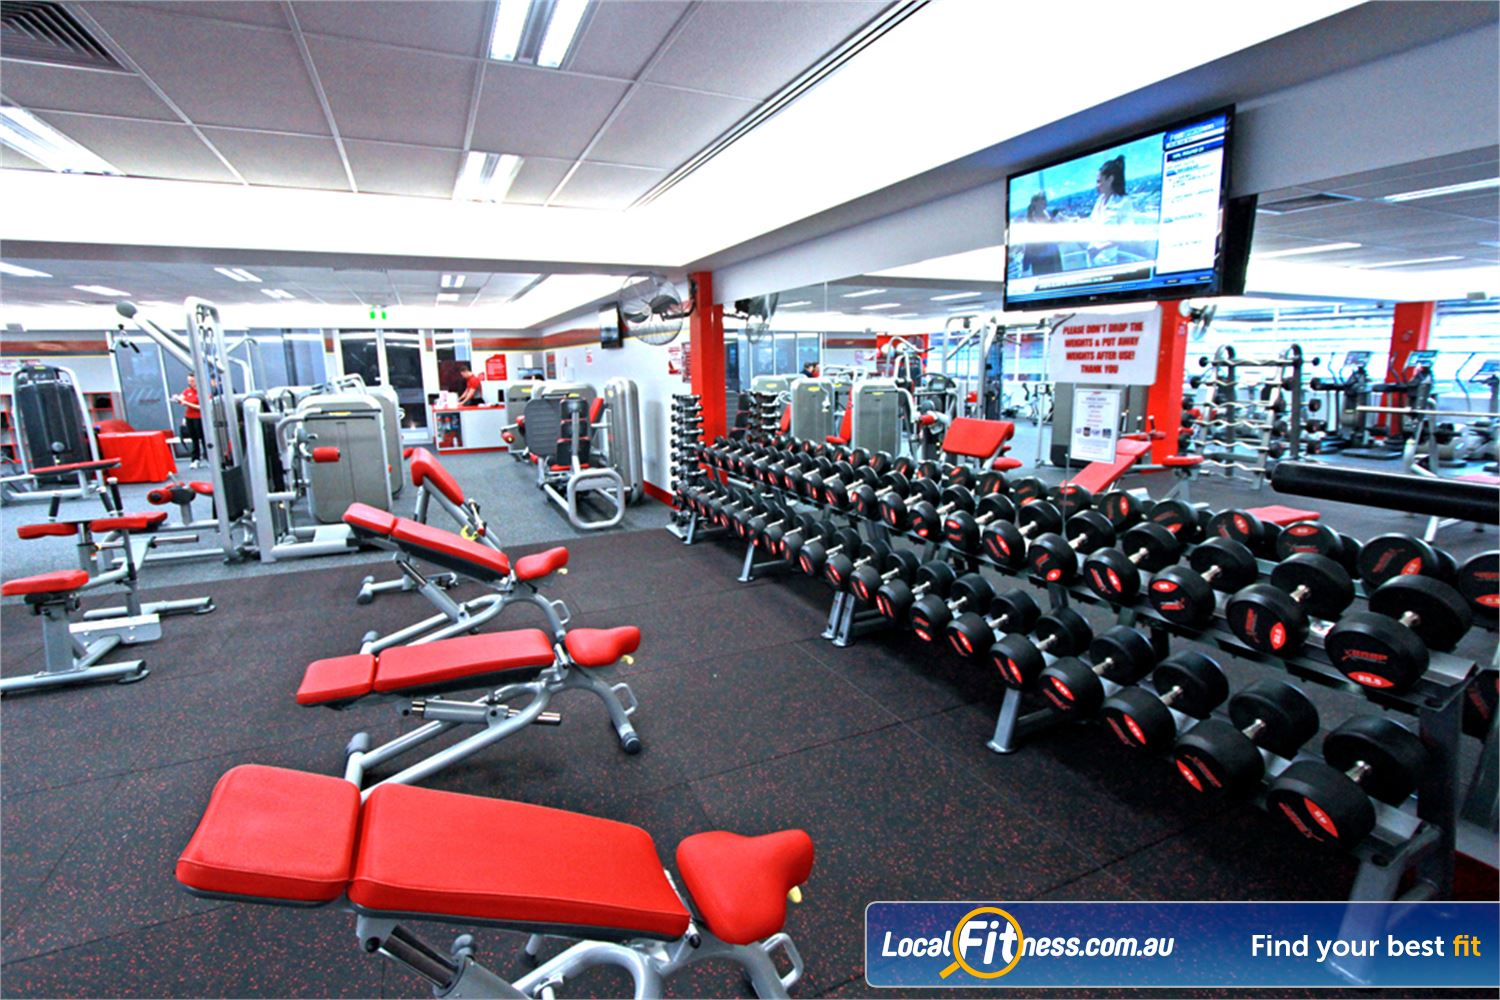 Snap Fitness Near Mount Ommaney The comprehensive free-weights area in our 24 hour Jindalee gym.